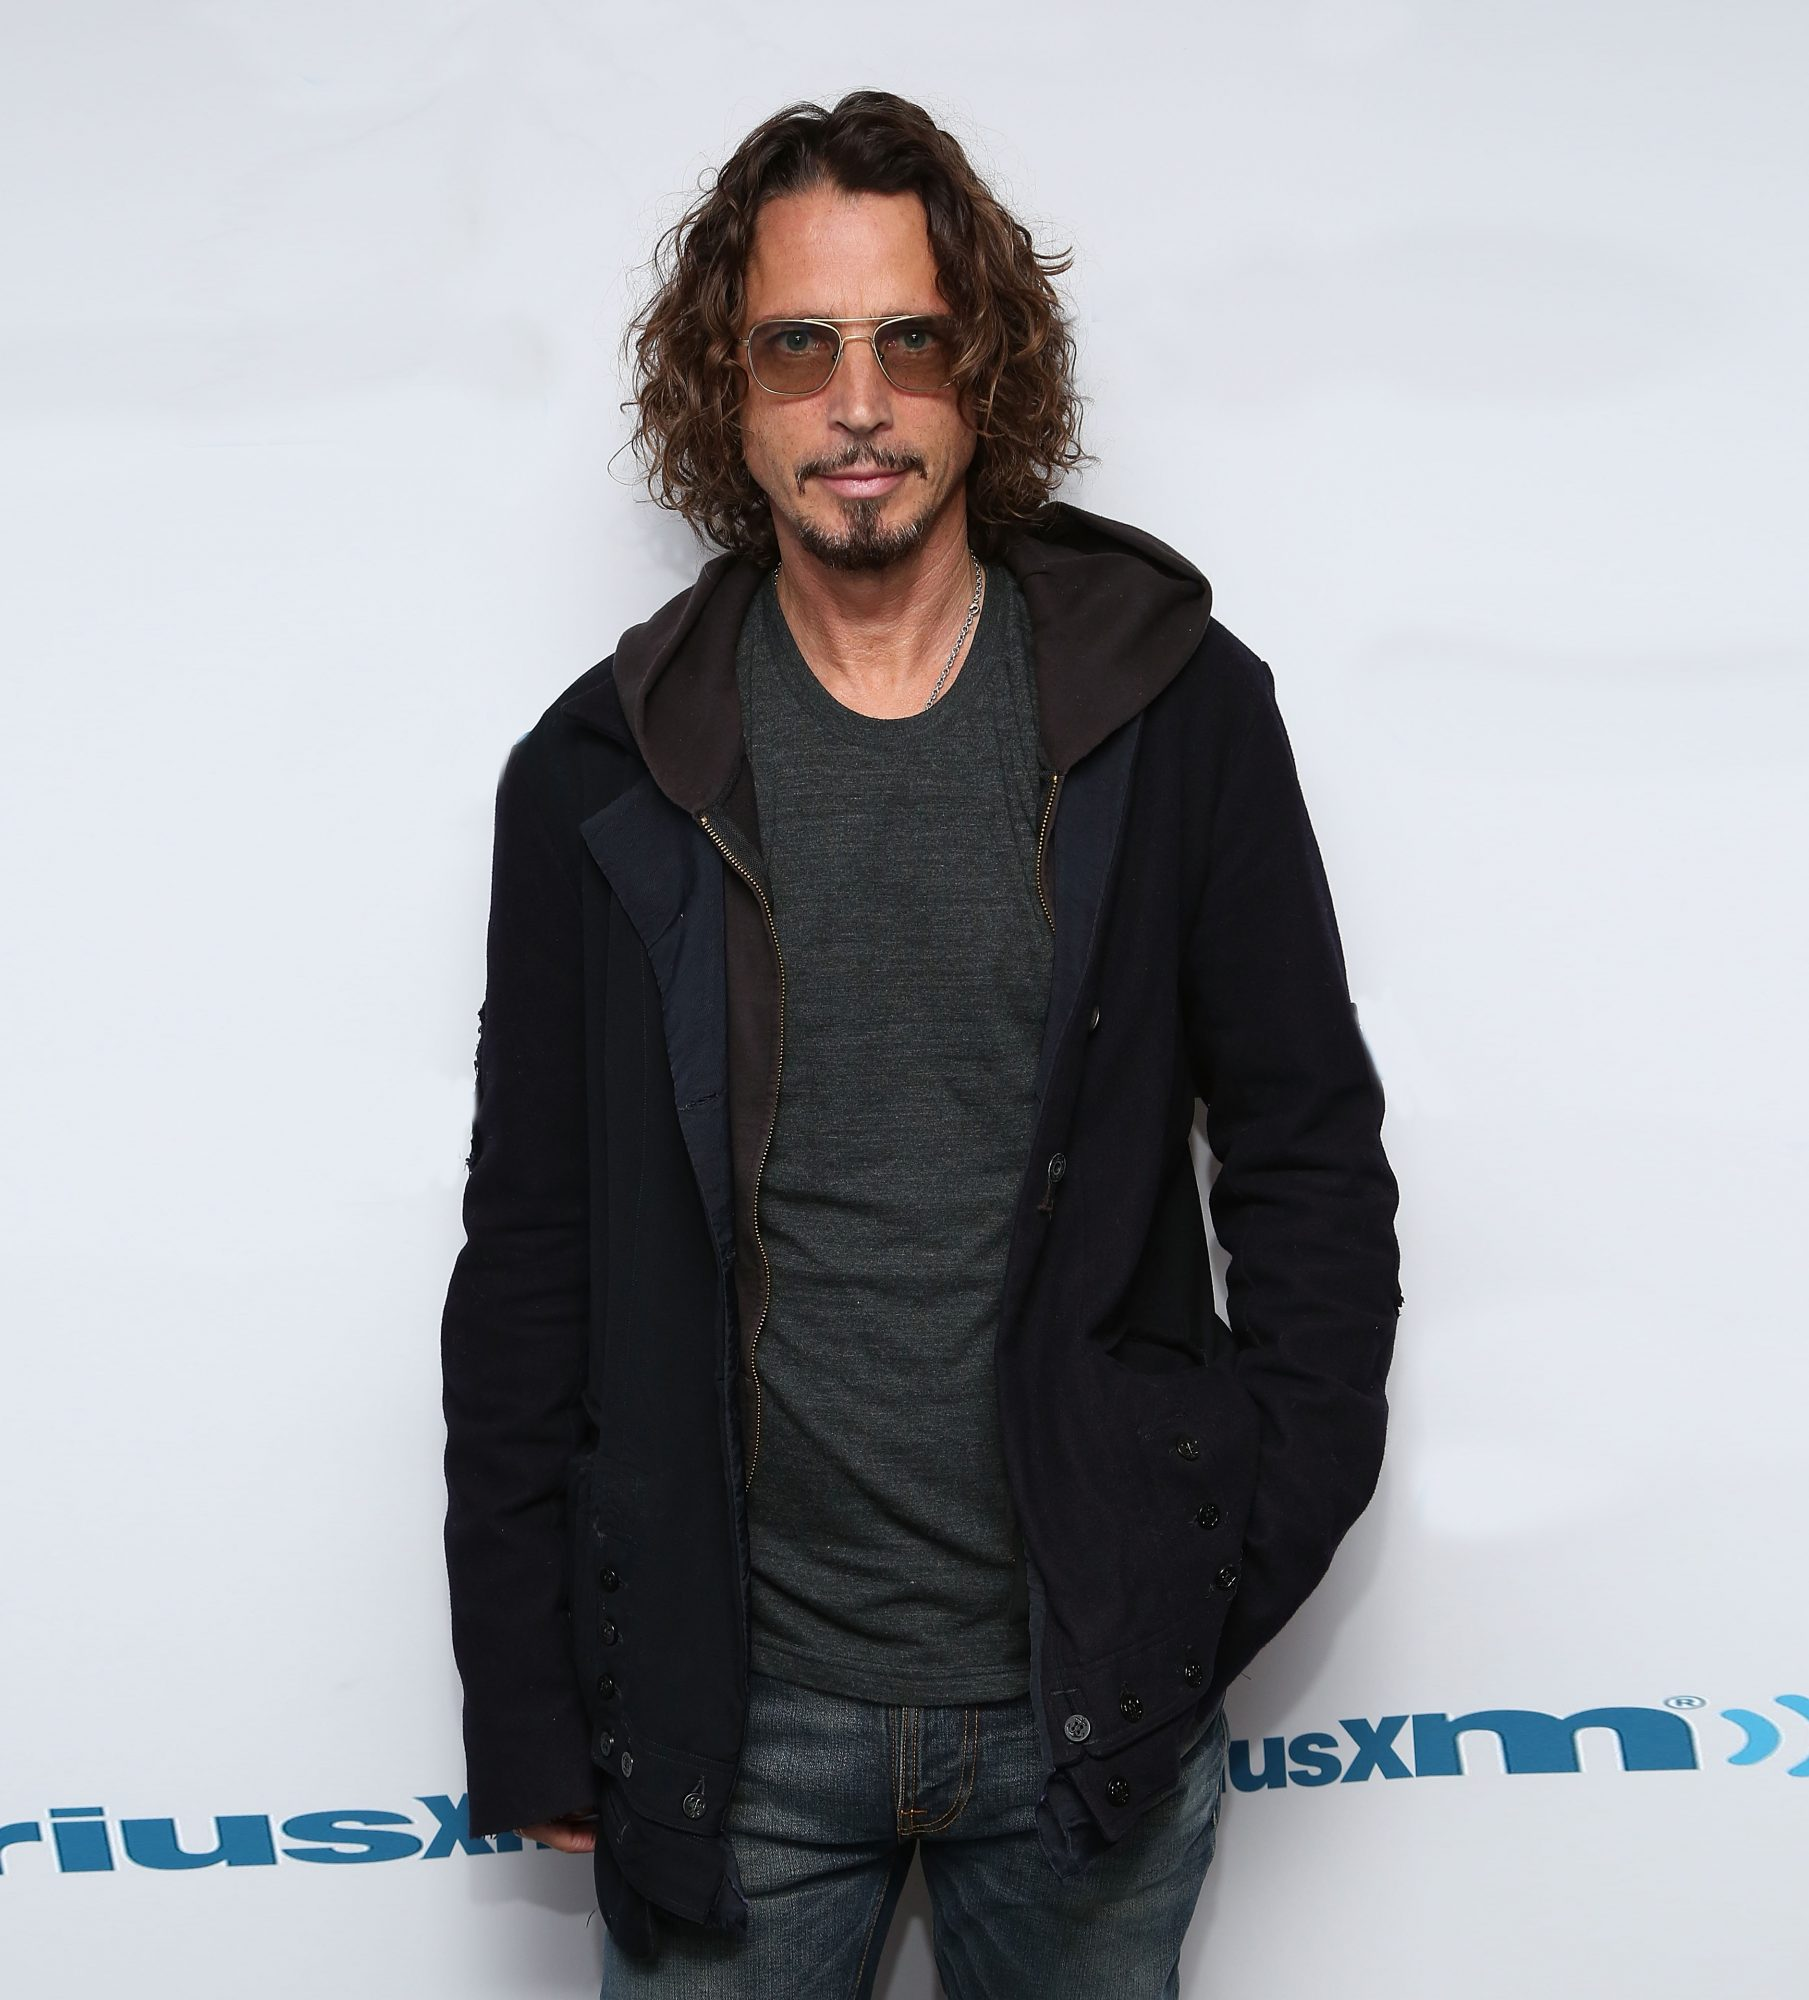 Chris Cornell: Did The Drugs In Chris Cornell's System Lead To His